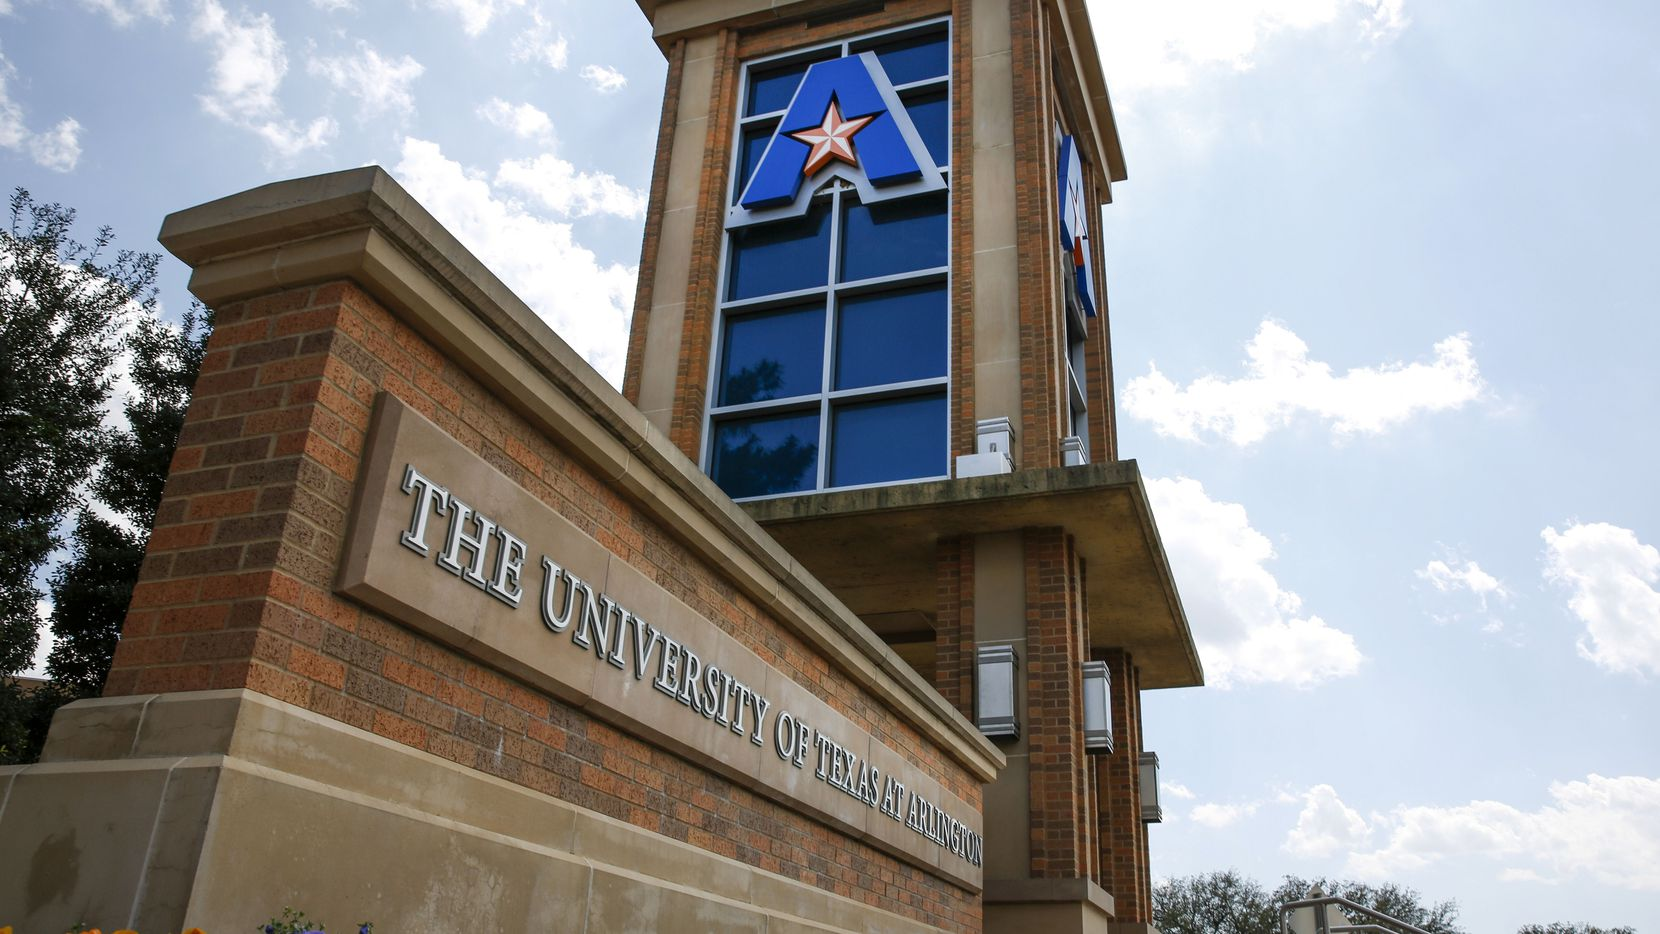 University of Texas Arlington on April 4, 2019 in Arlington, Texas. (Brian Elledge/The Dallas Morning News)